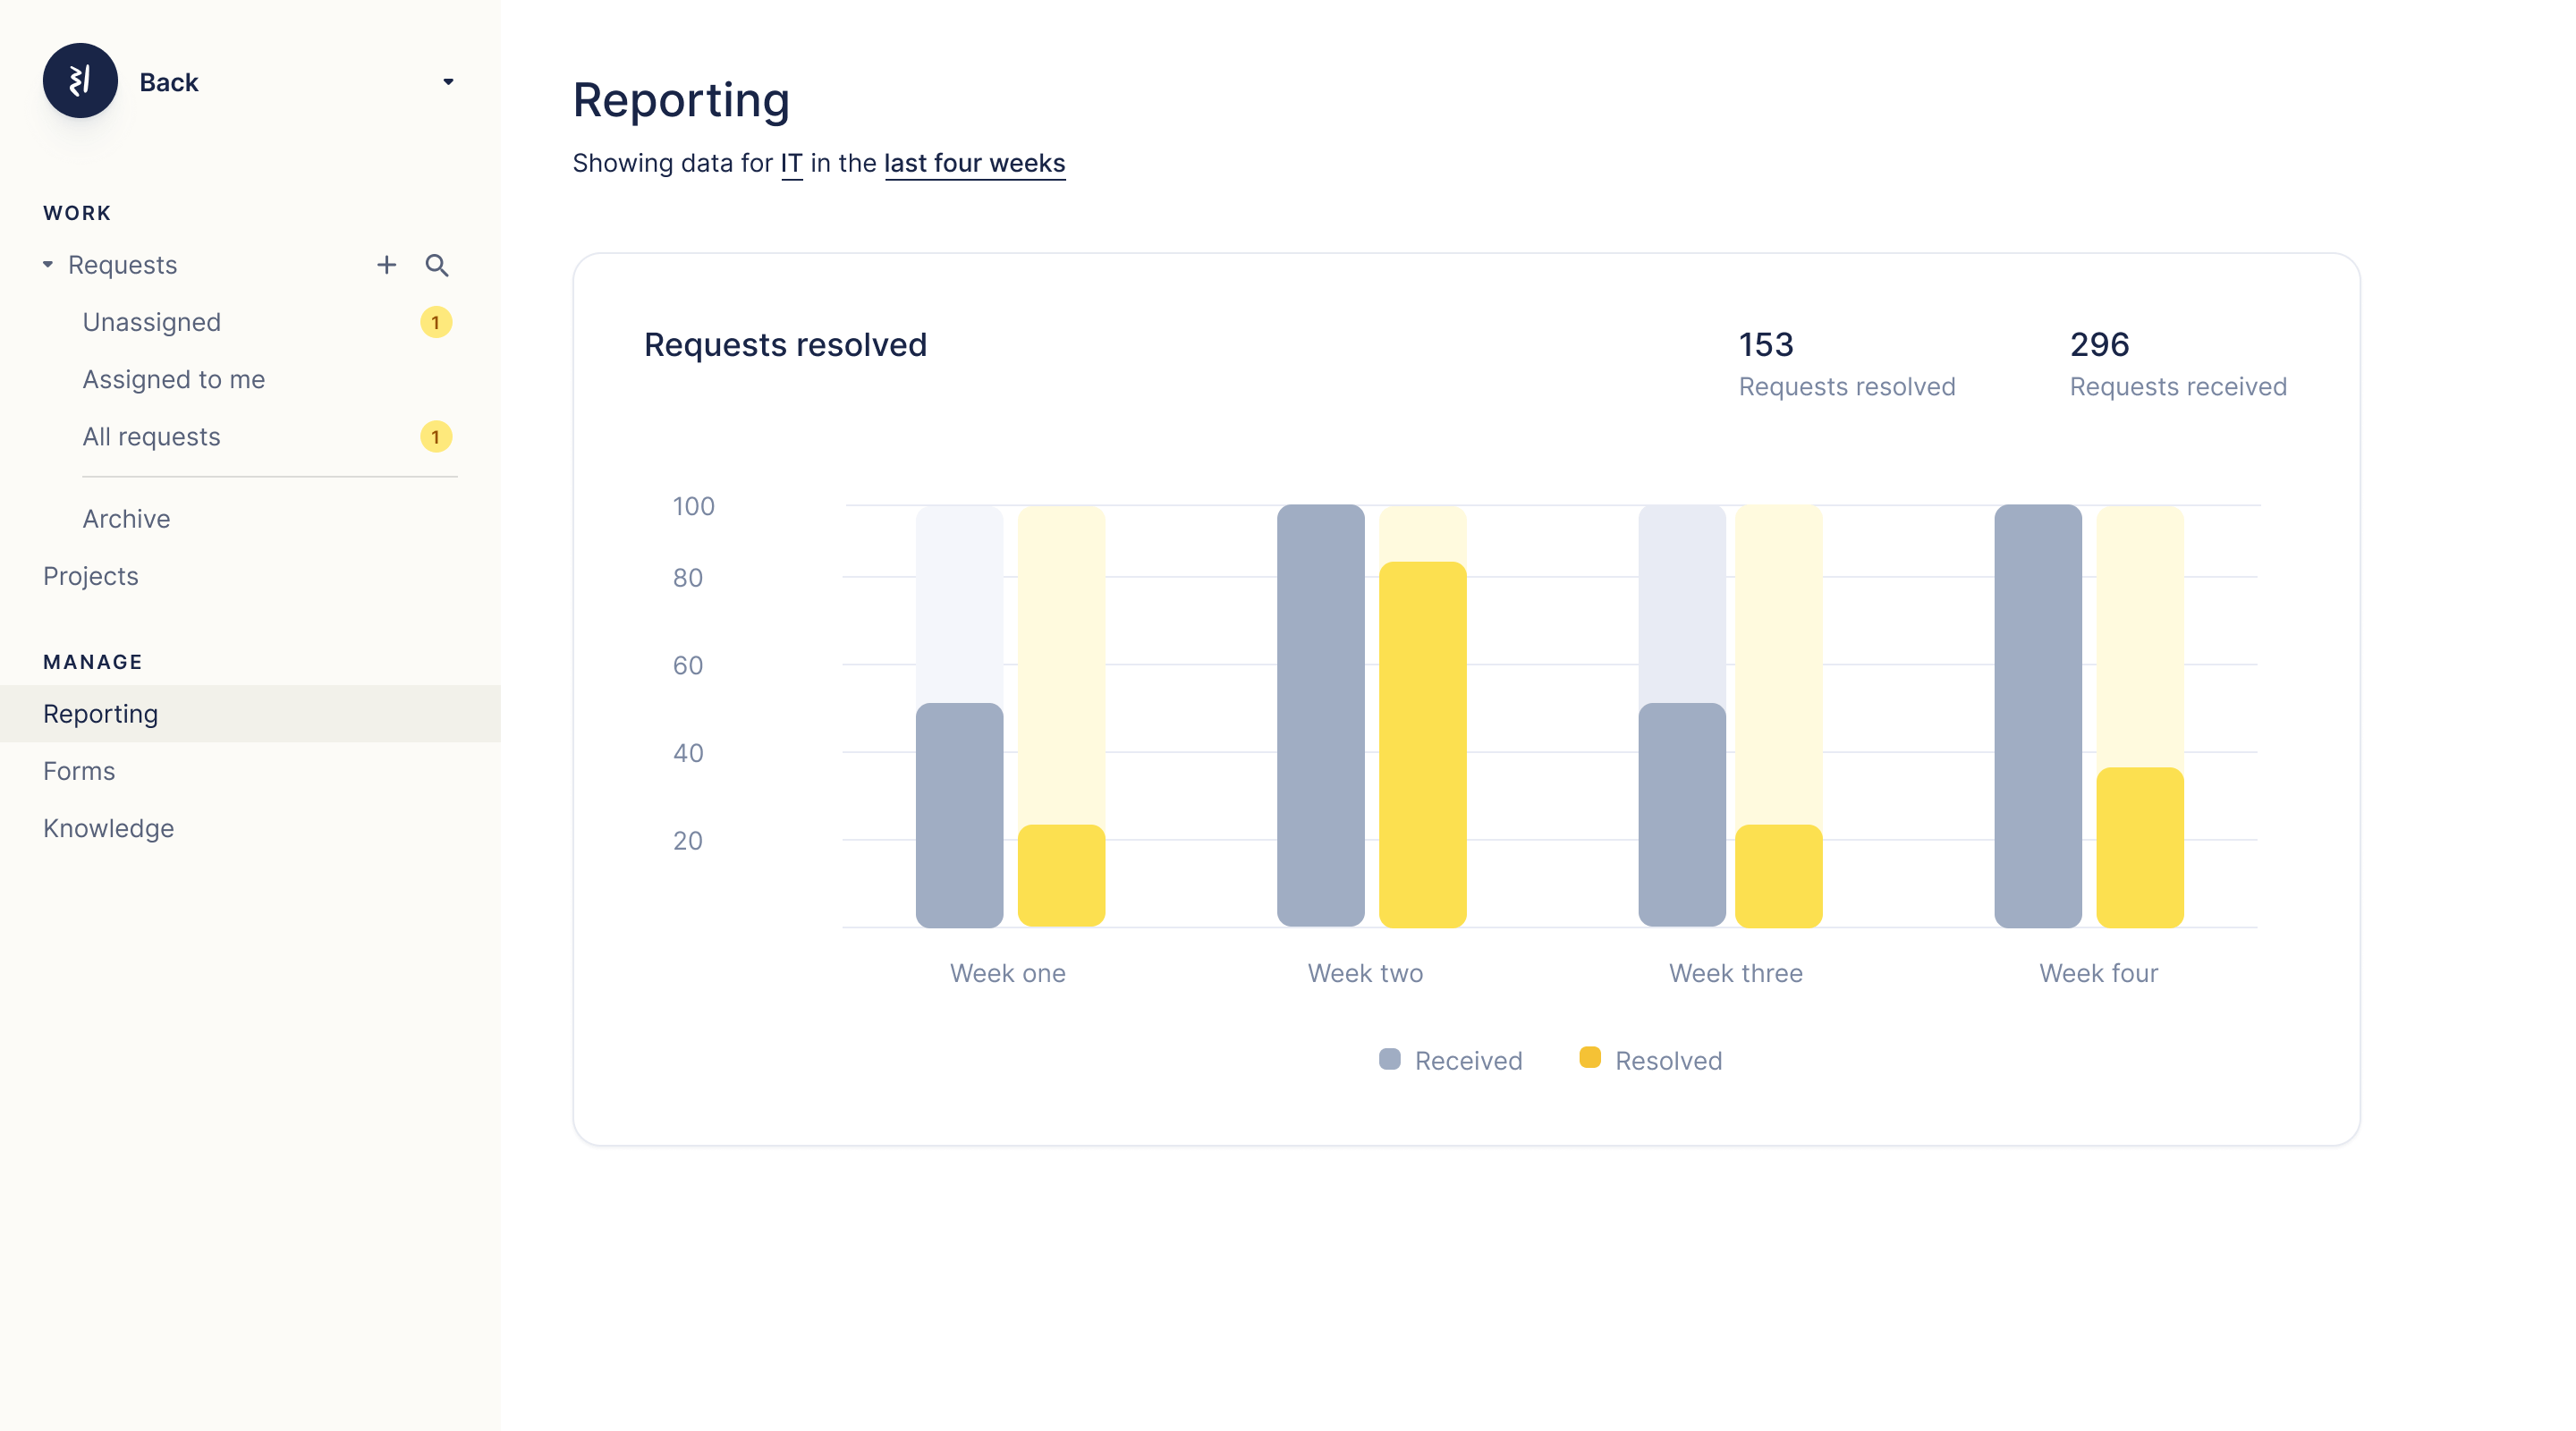 Reporting showing data about employee requests solved